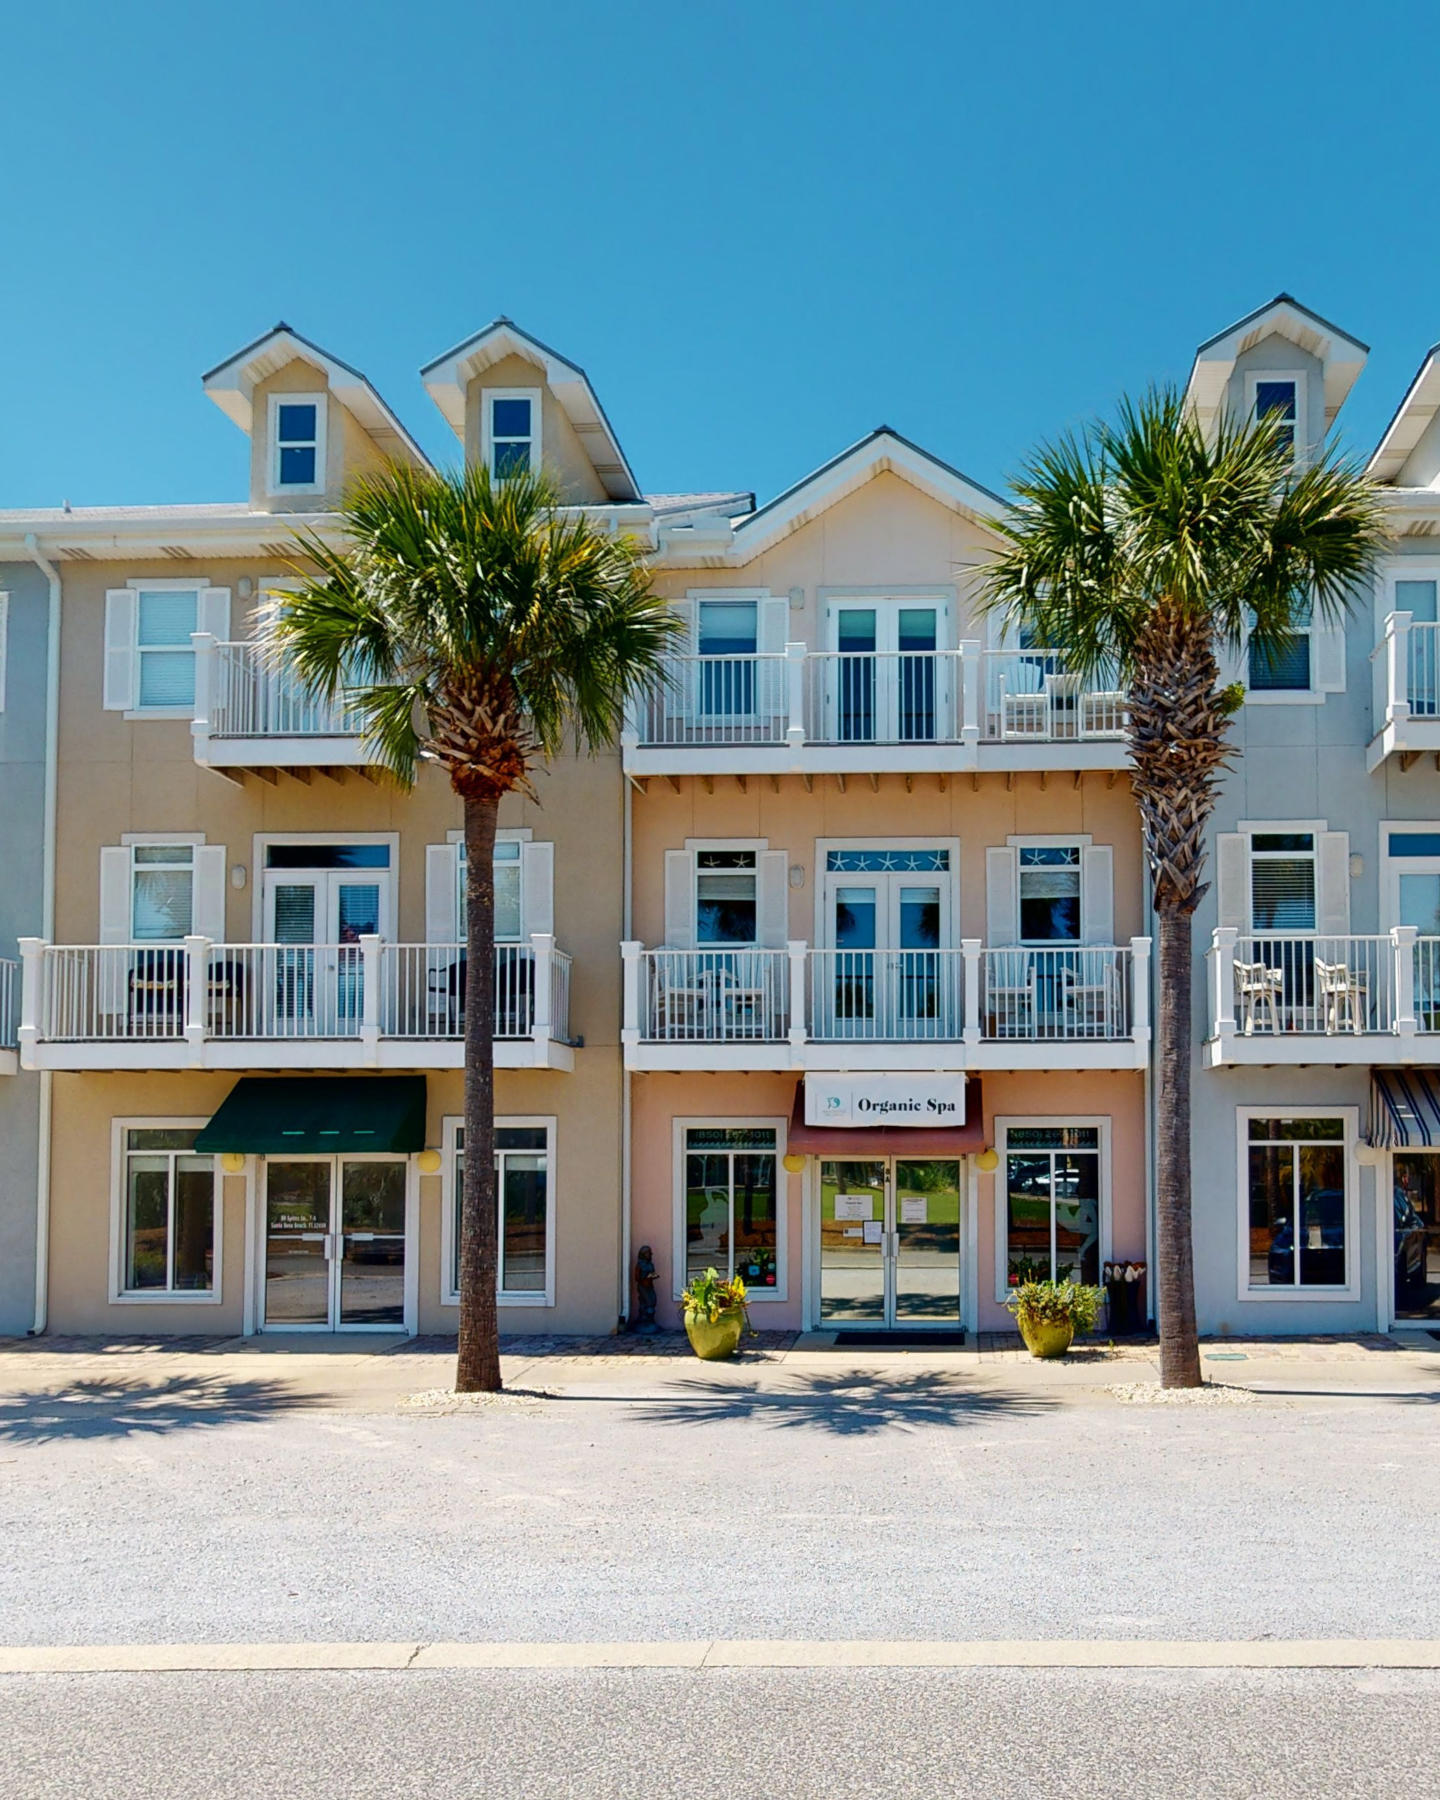 Commercial & retail space located conveniently along scenic 30A. Don't miss this rare opportunity to